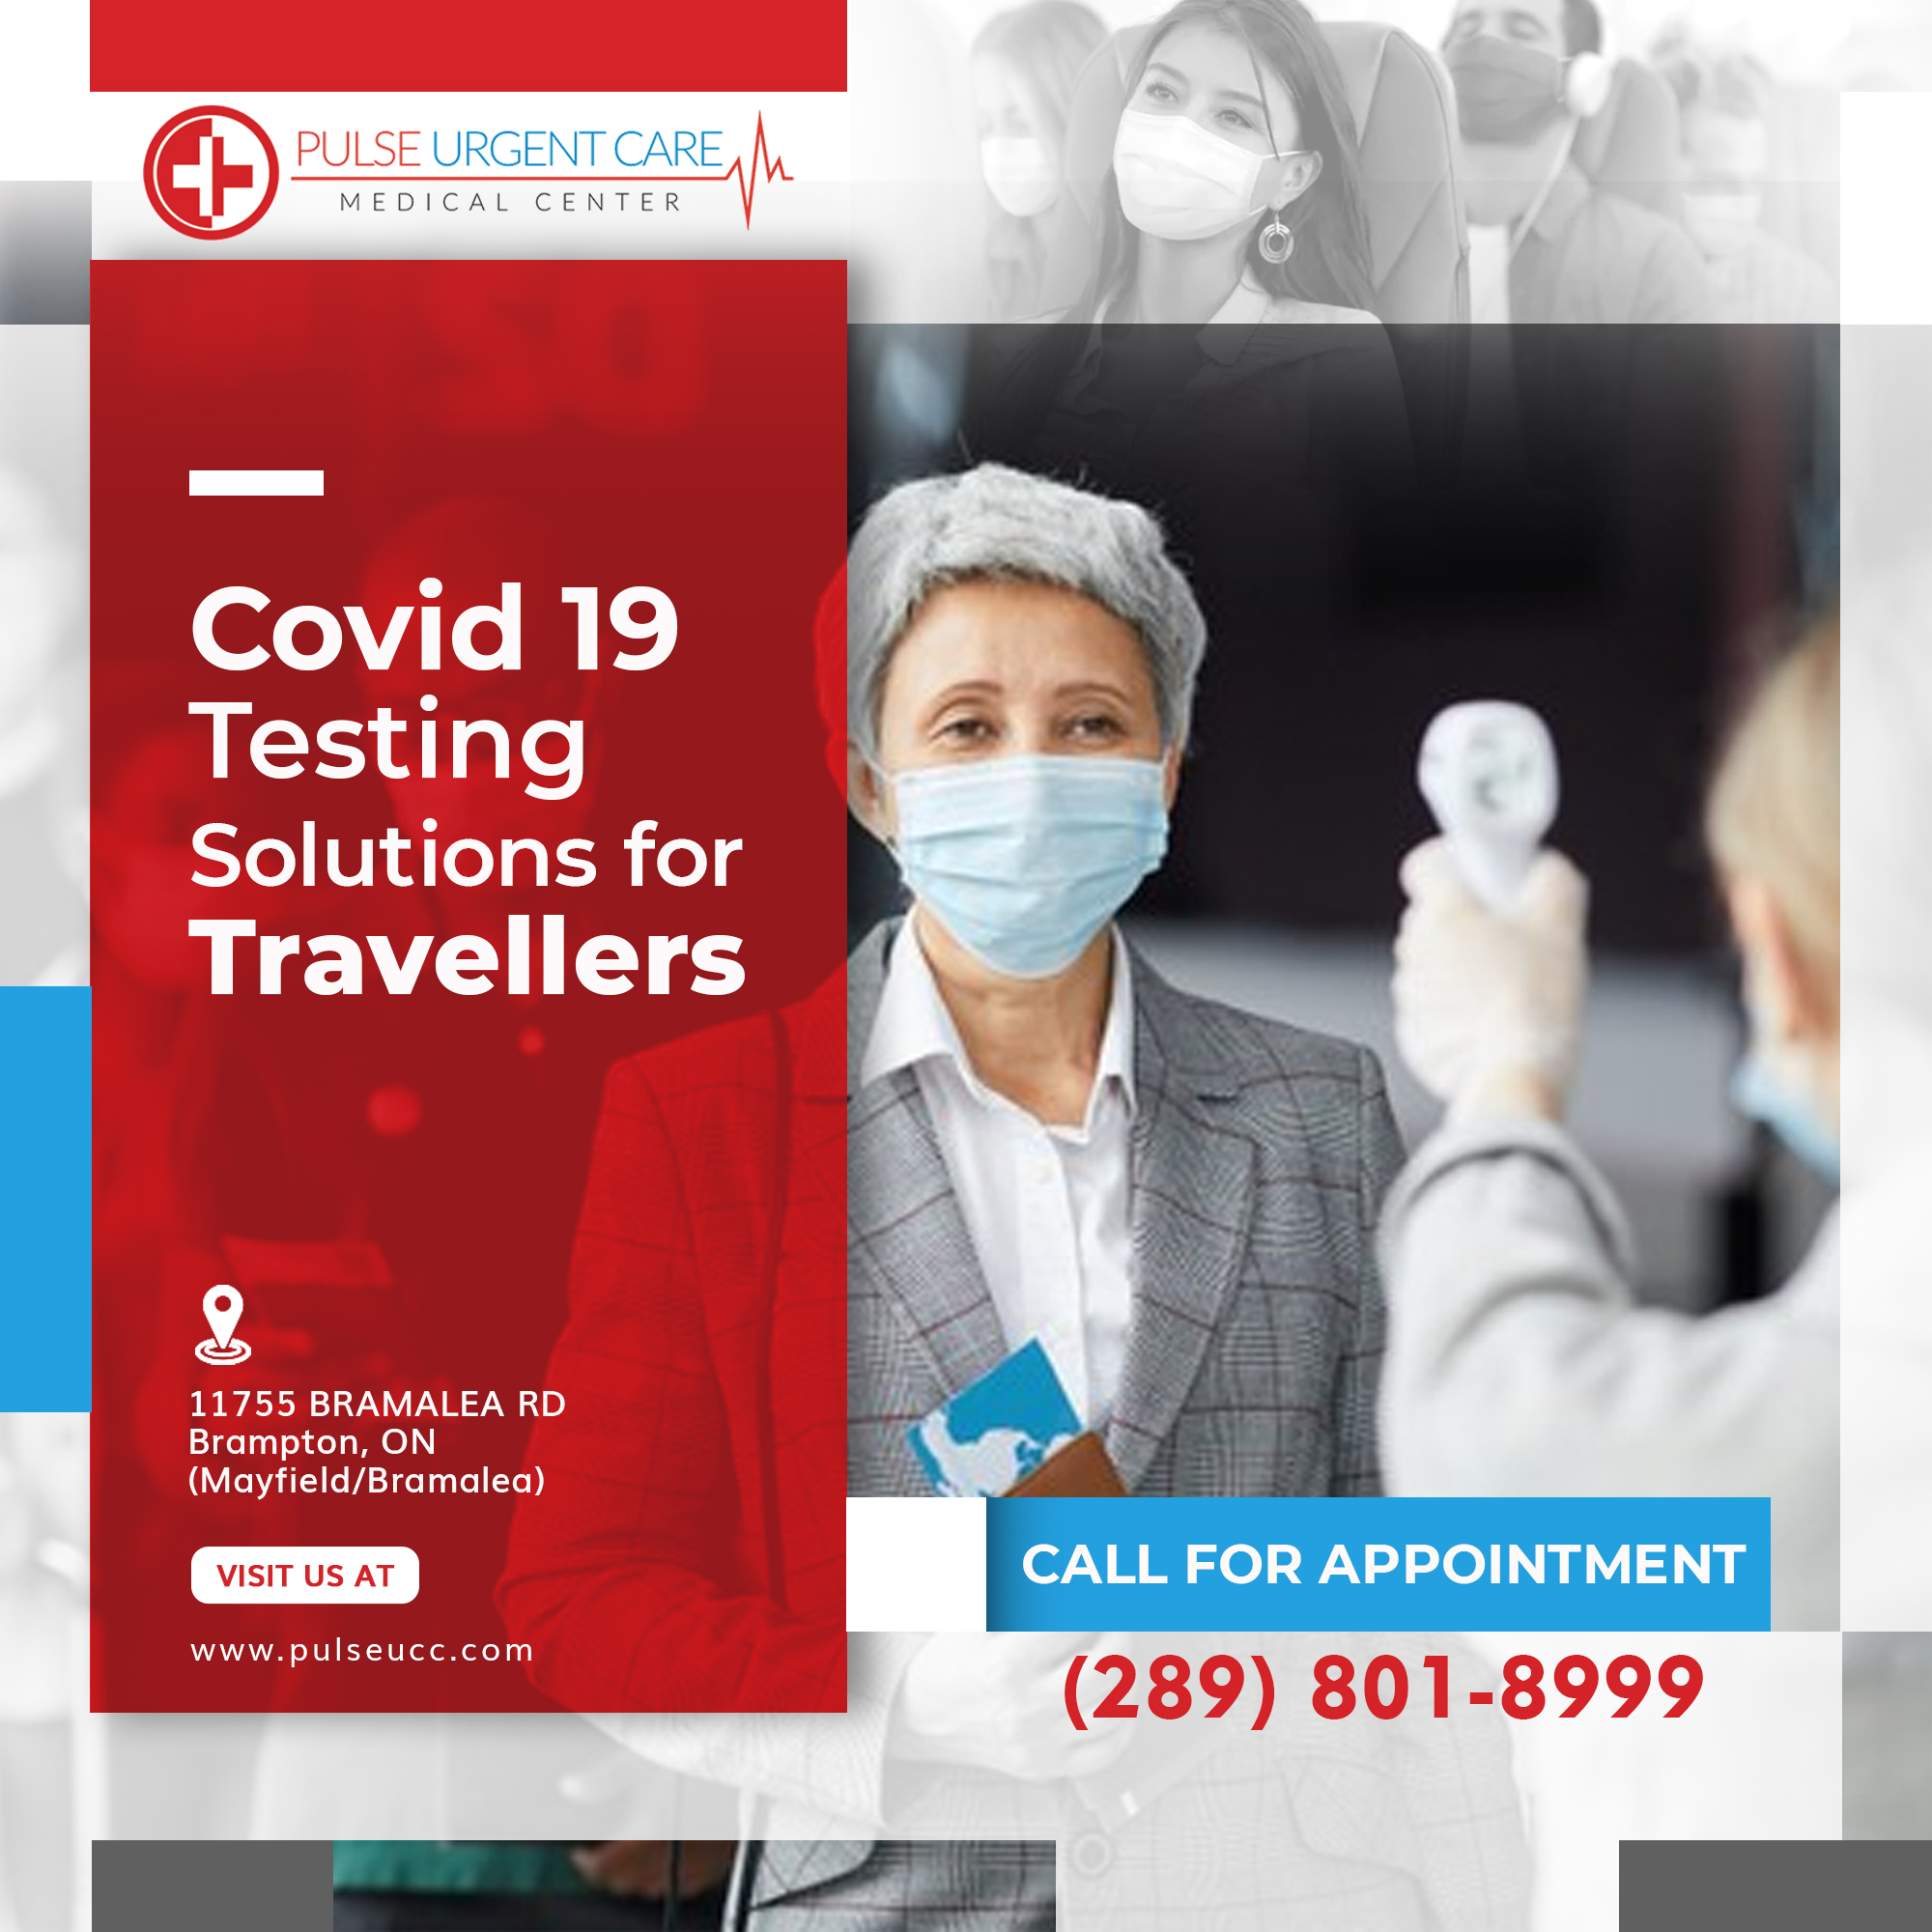 Covid-19 Testing Is Now Available at the Bramalea Location